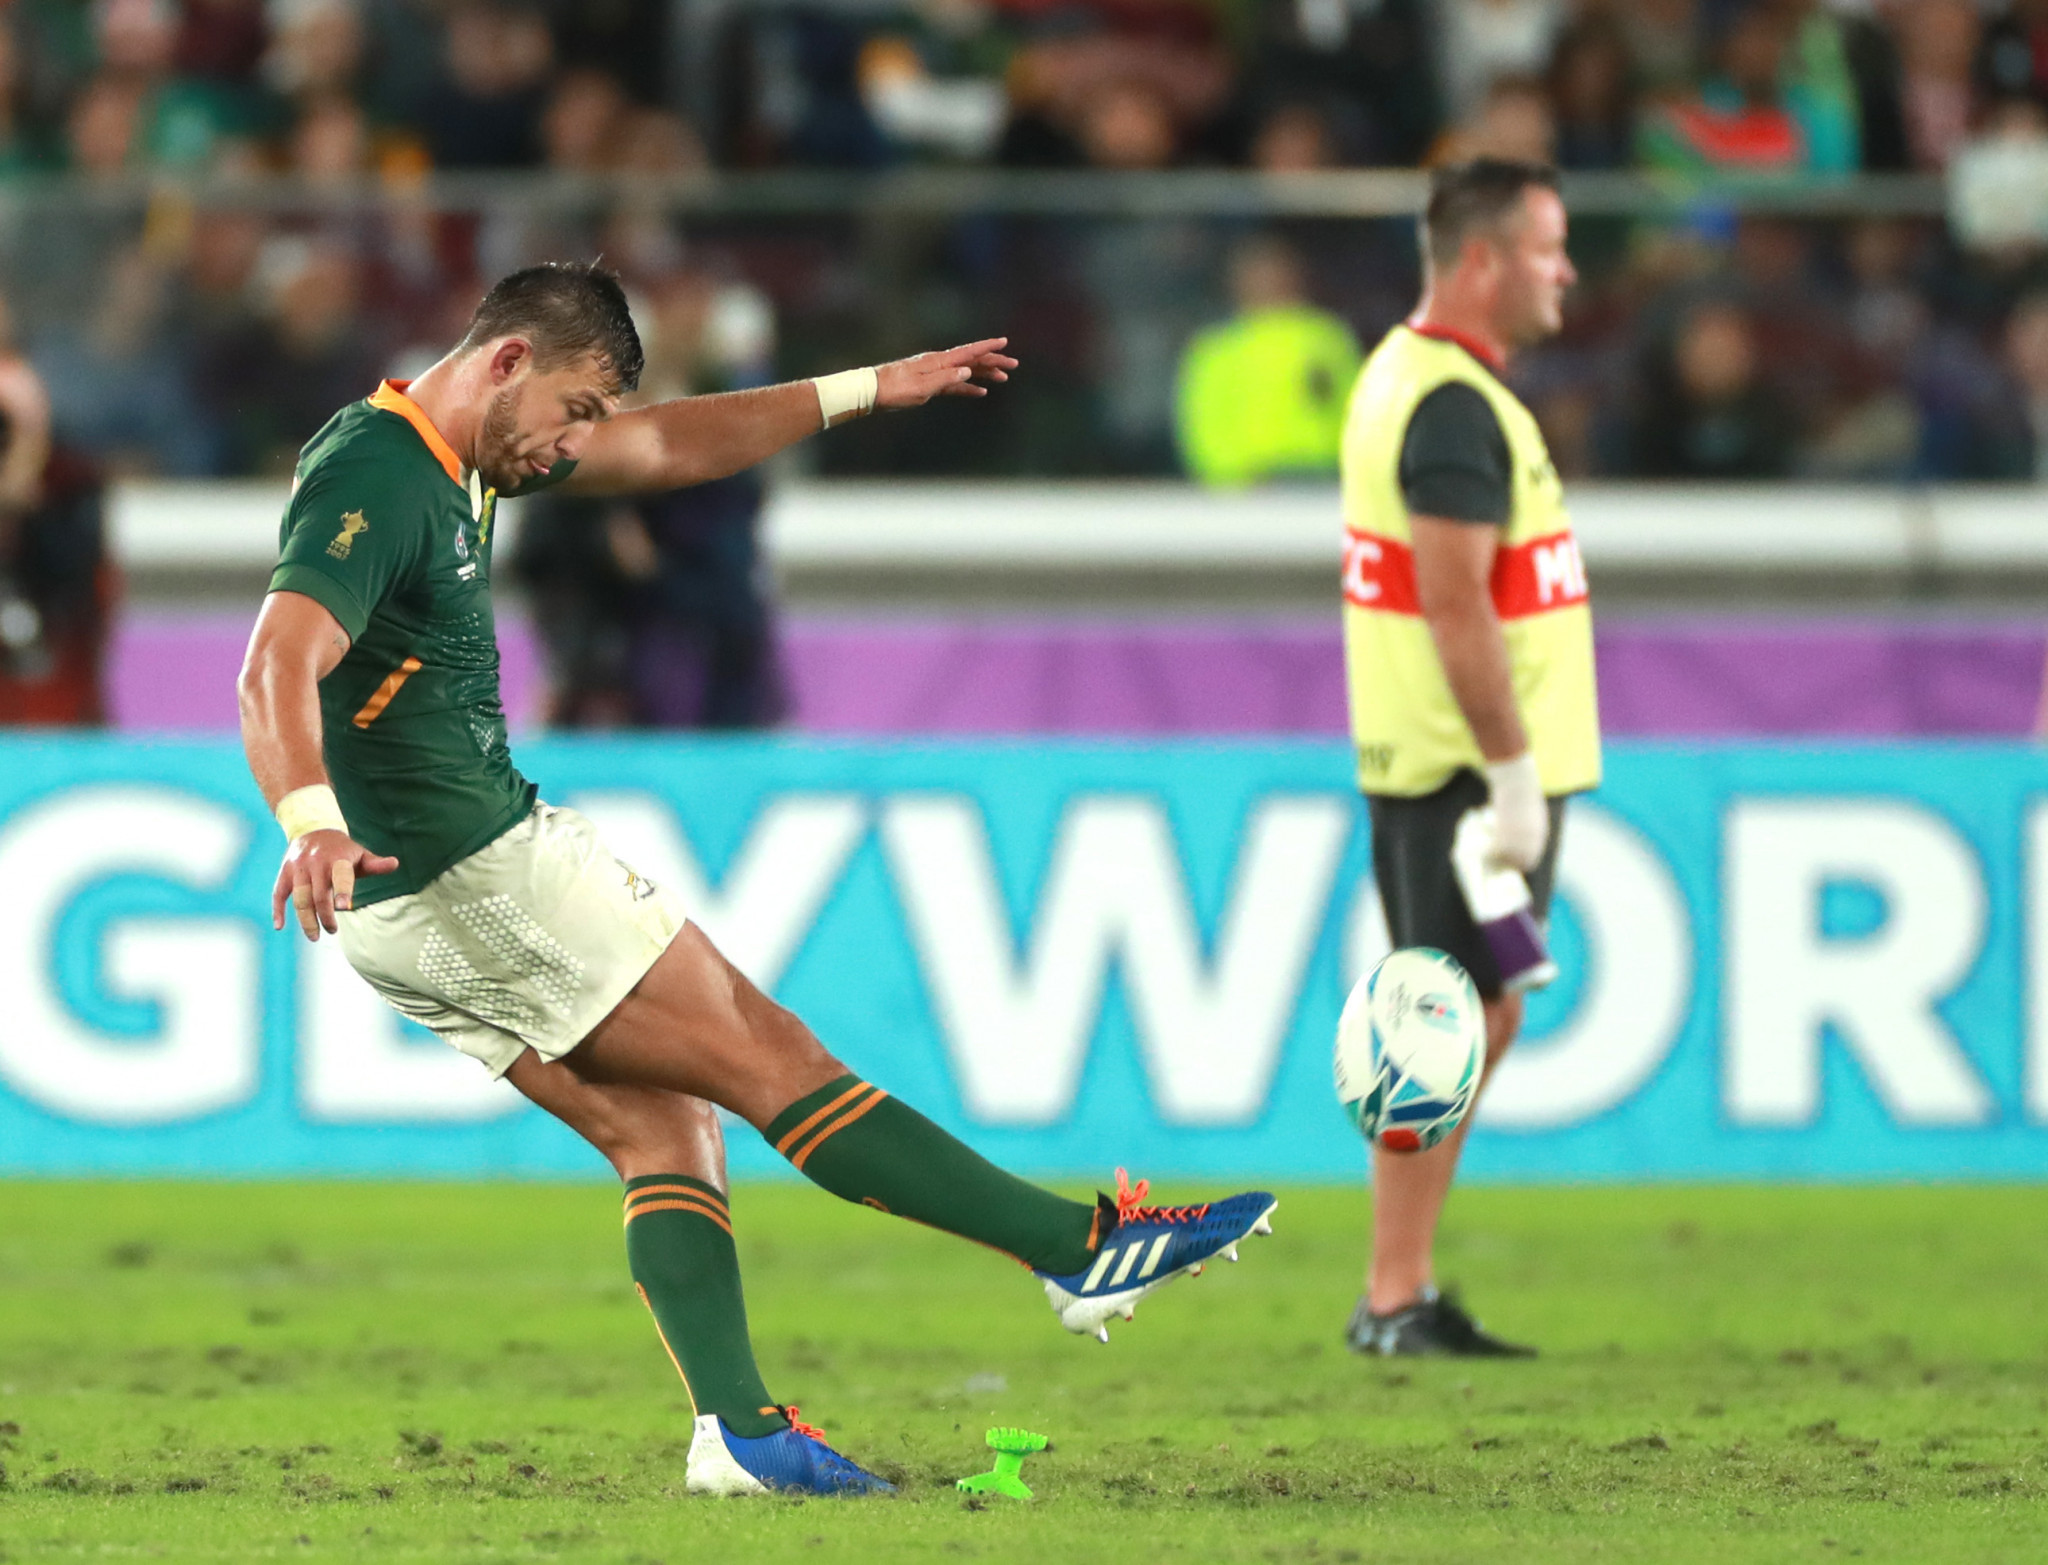 South Africa edge out Wales to reach Rugby World Cup final